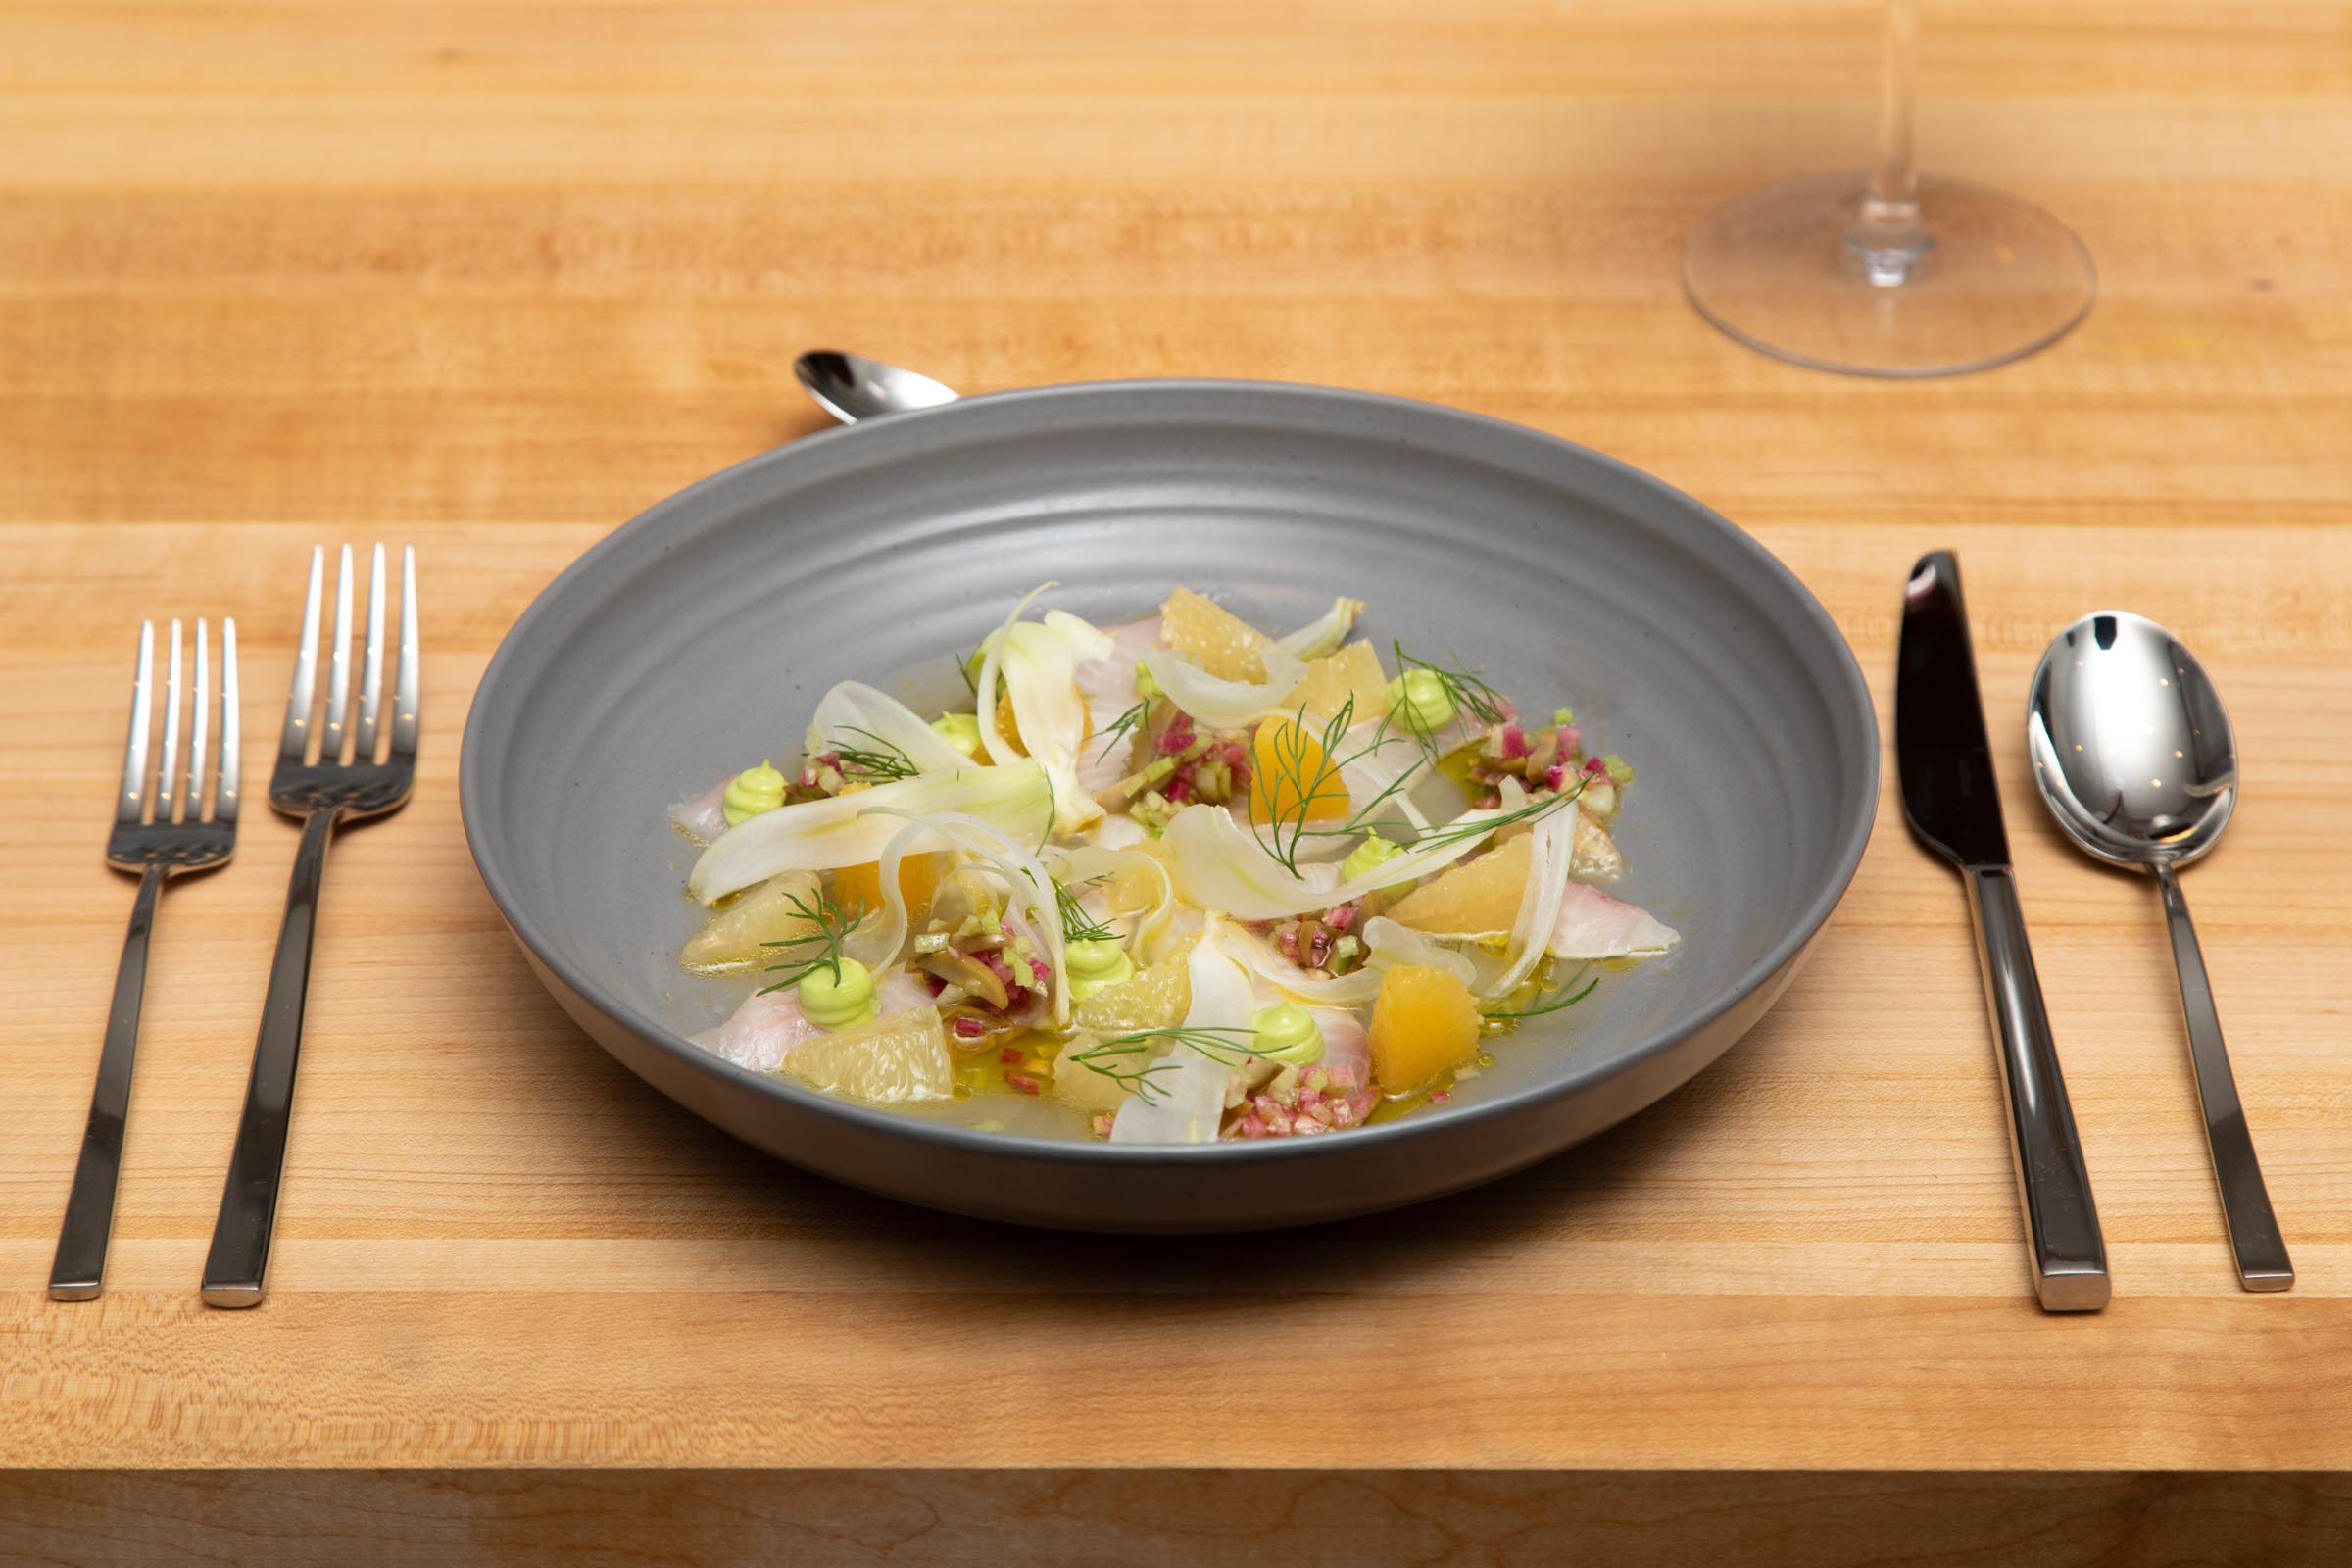 Plated Meals - Individually plated dining experiences are elevated meals that allow the chef to guide you on a journey.